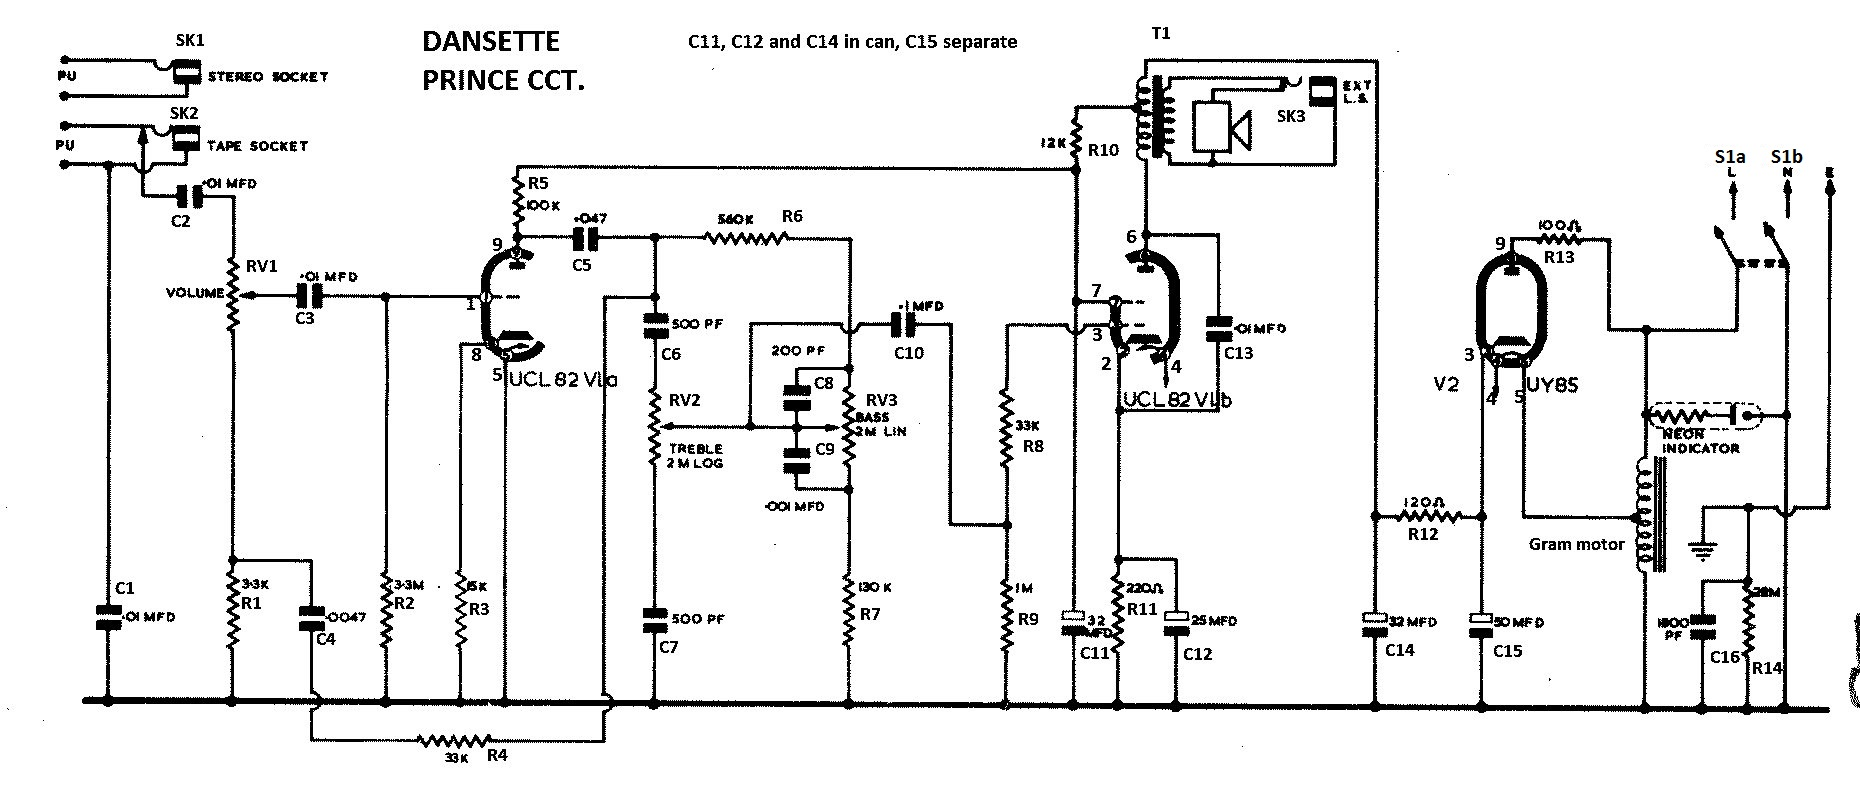 Yamaha Golf Cart G2 Wiring Diagram Just Another Blog Moreover On Electric 3 Phase Generator G32 Free For You U2022 Rh Getescorts Pro Starter Drive